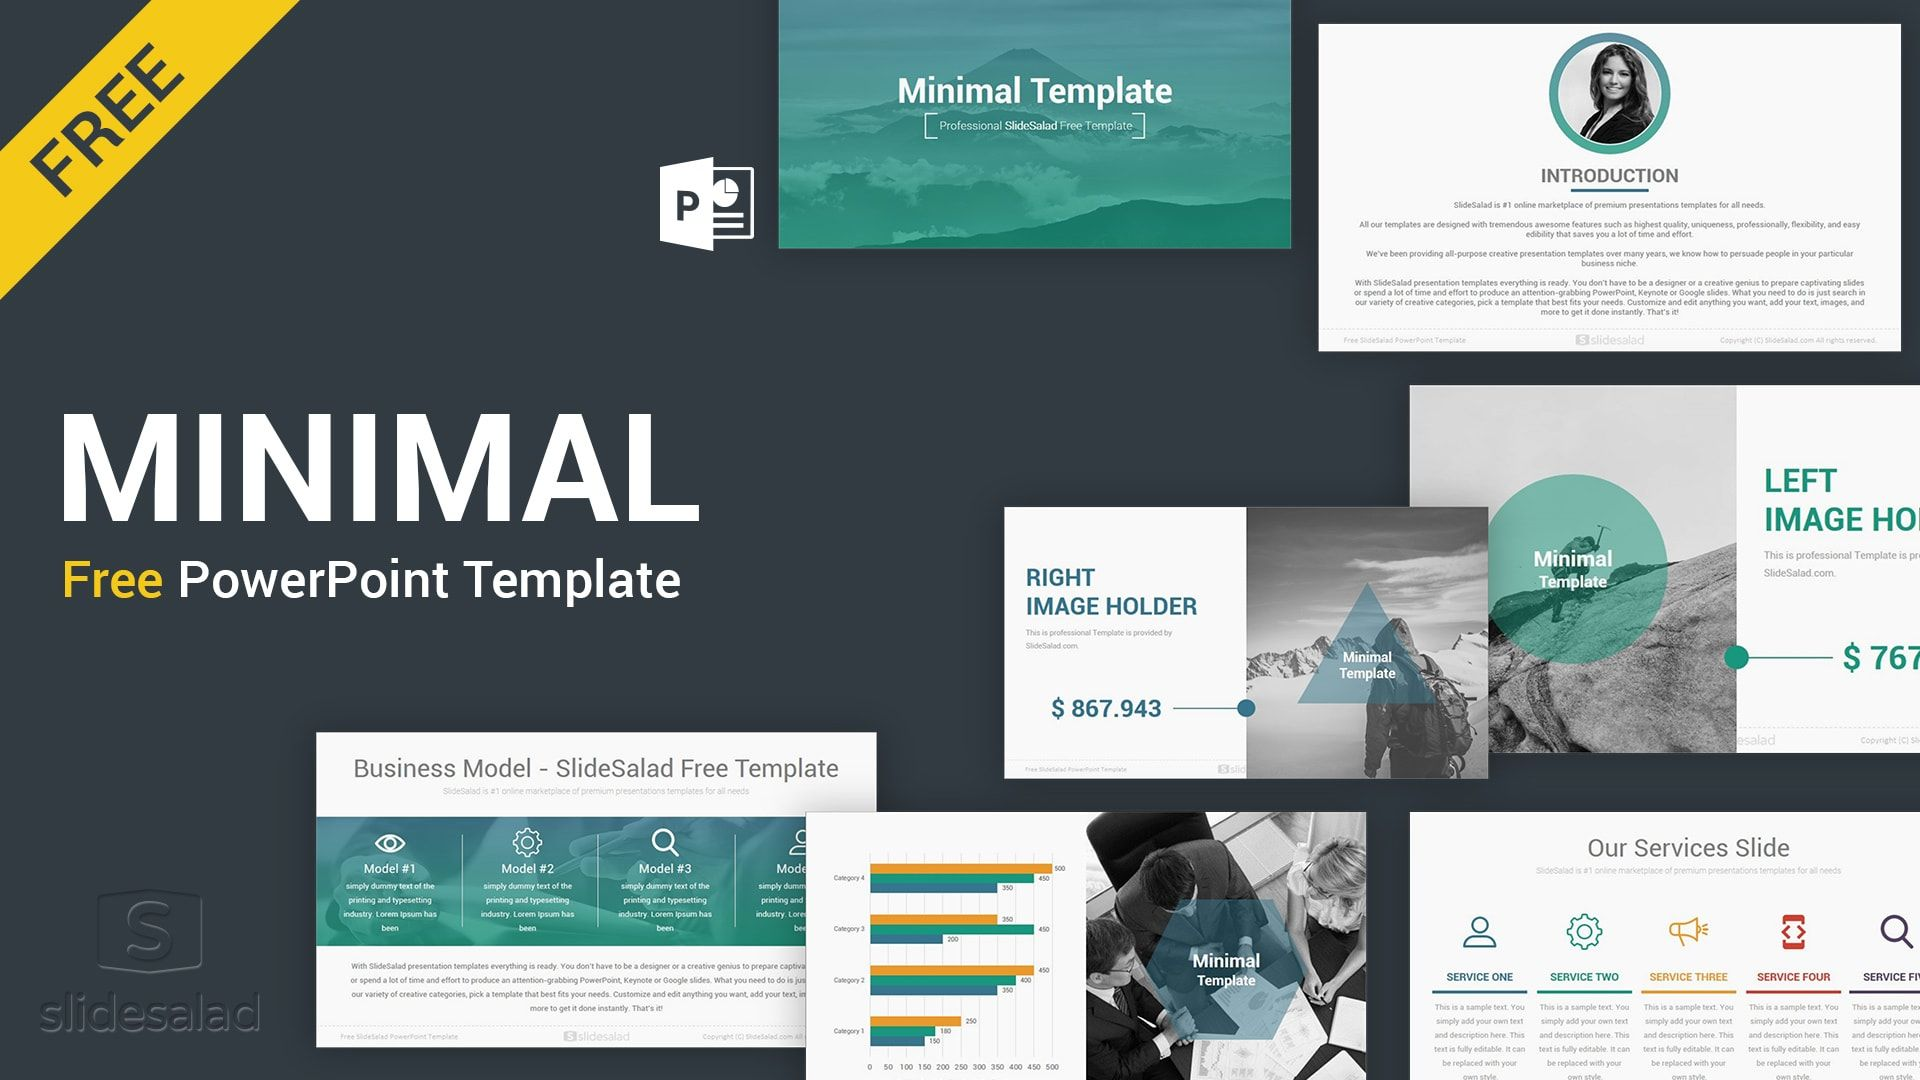 Best Free Presentation Templates Professional Designs 2020 within ...